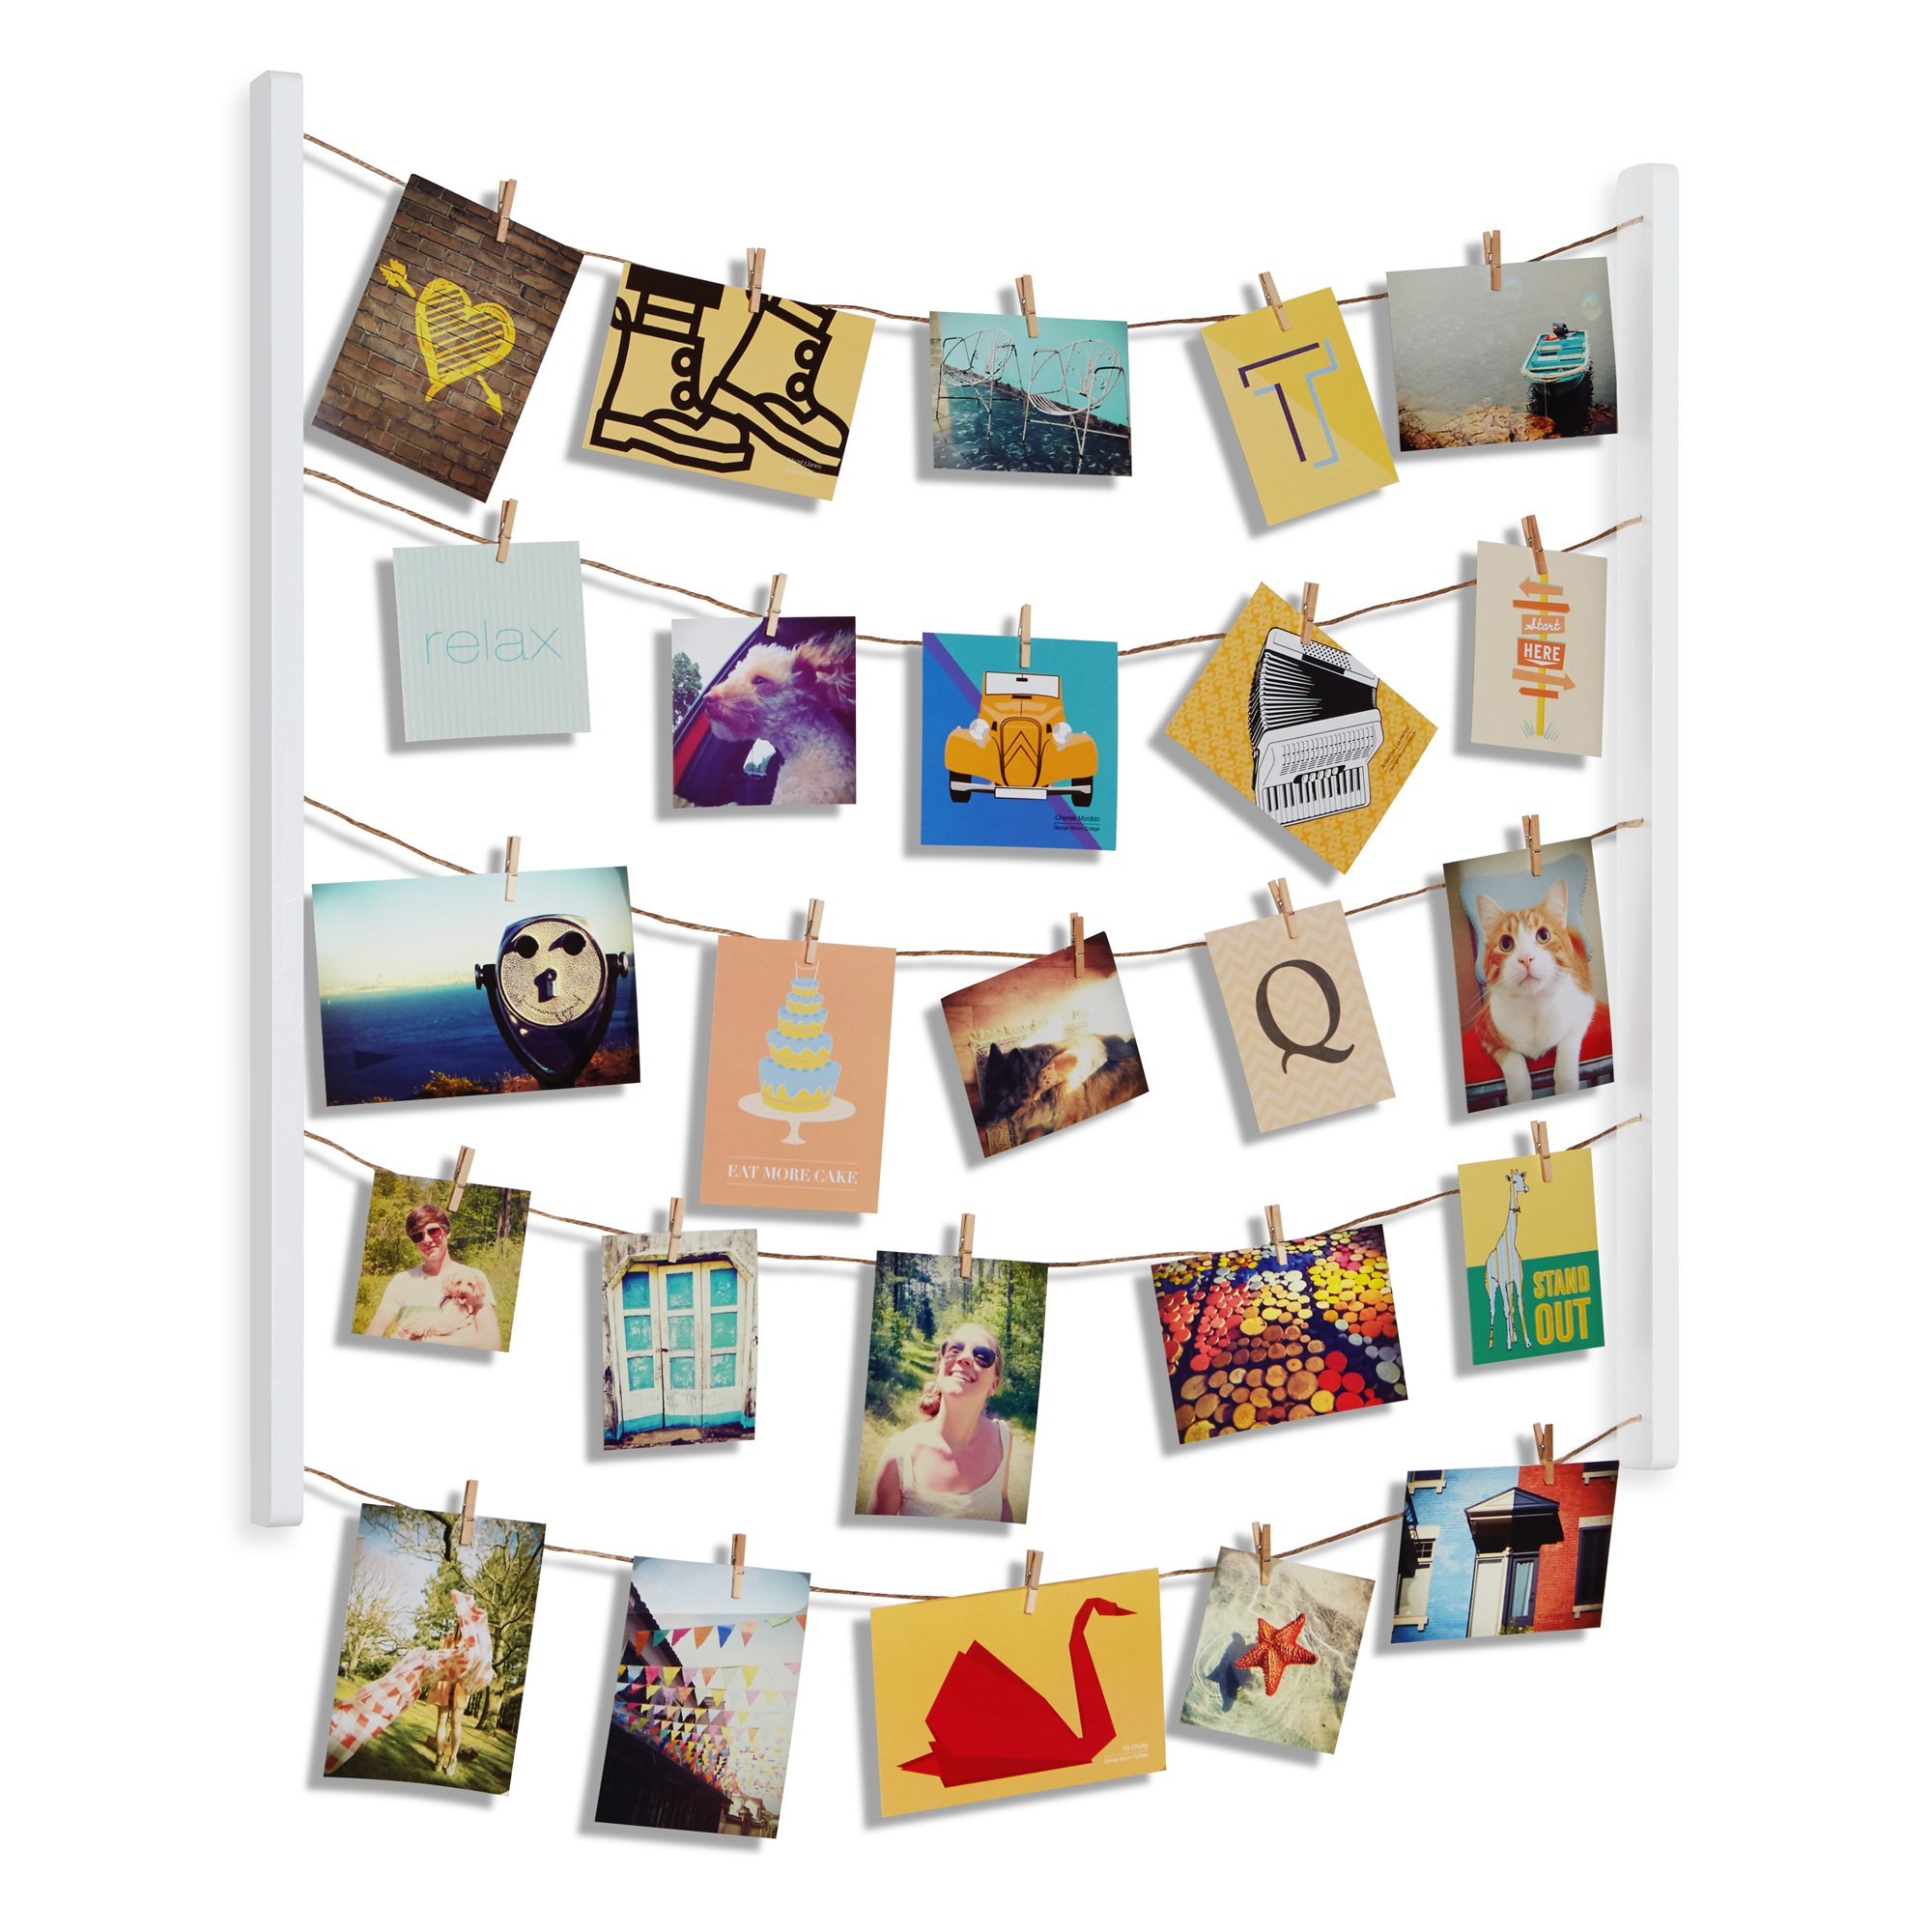 Umbra Hangit Photo Display - DIY Picture Frames Collage Set Includes Picture Hanging Wire Twine Cords, Natural Wood Wall Mounts and Clothespin Clips for Hanging Photos, Prints and Artwork (White) by Umbra